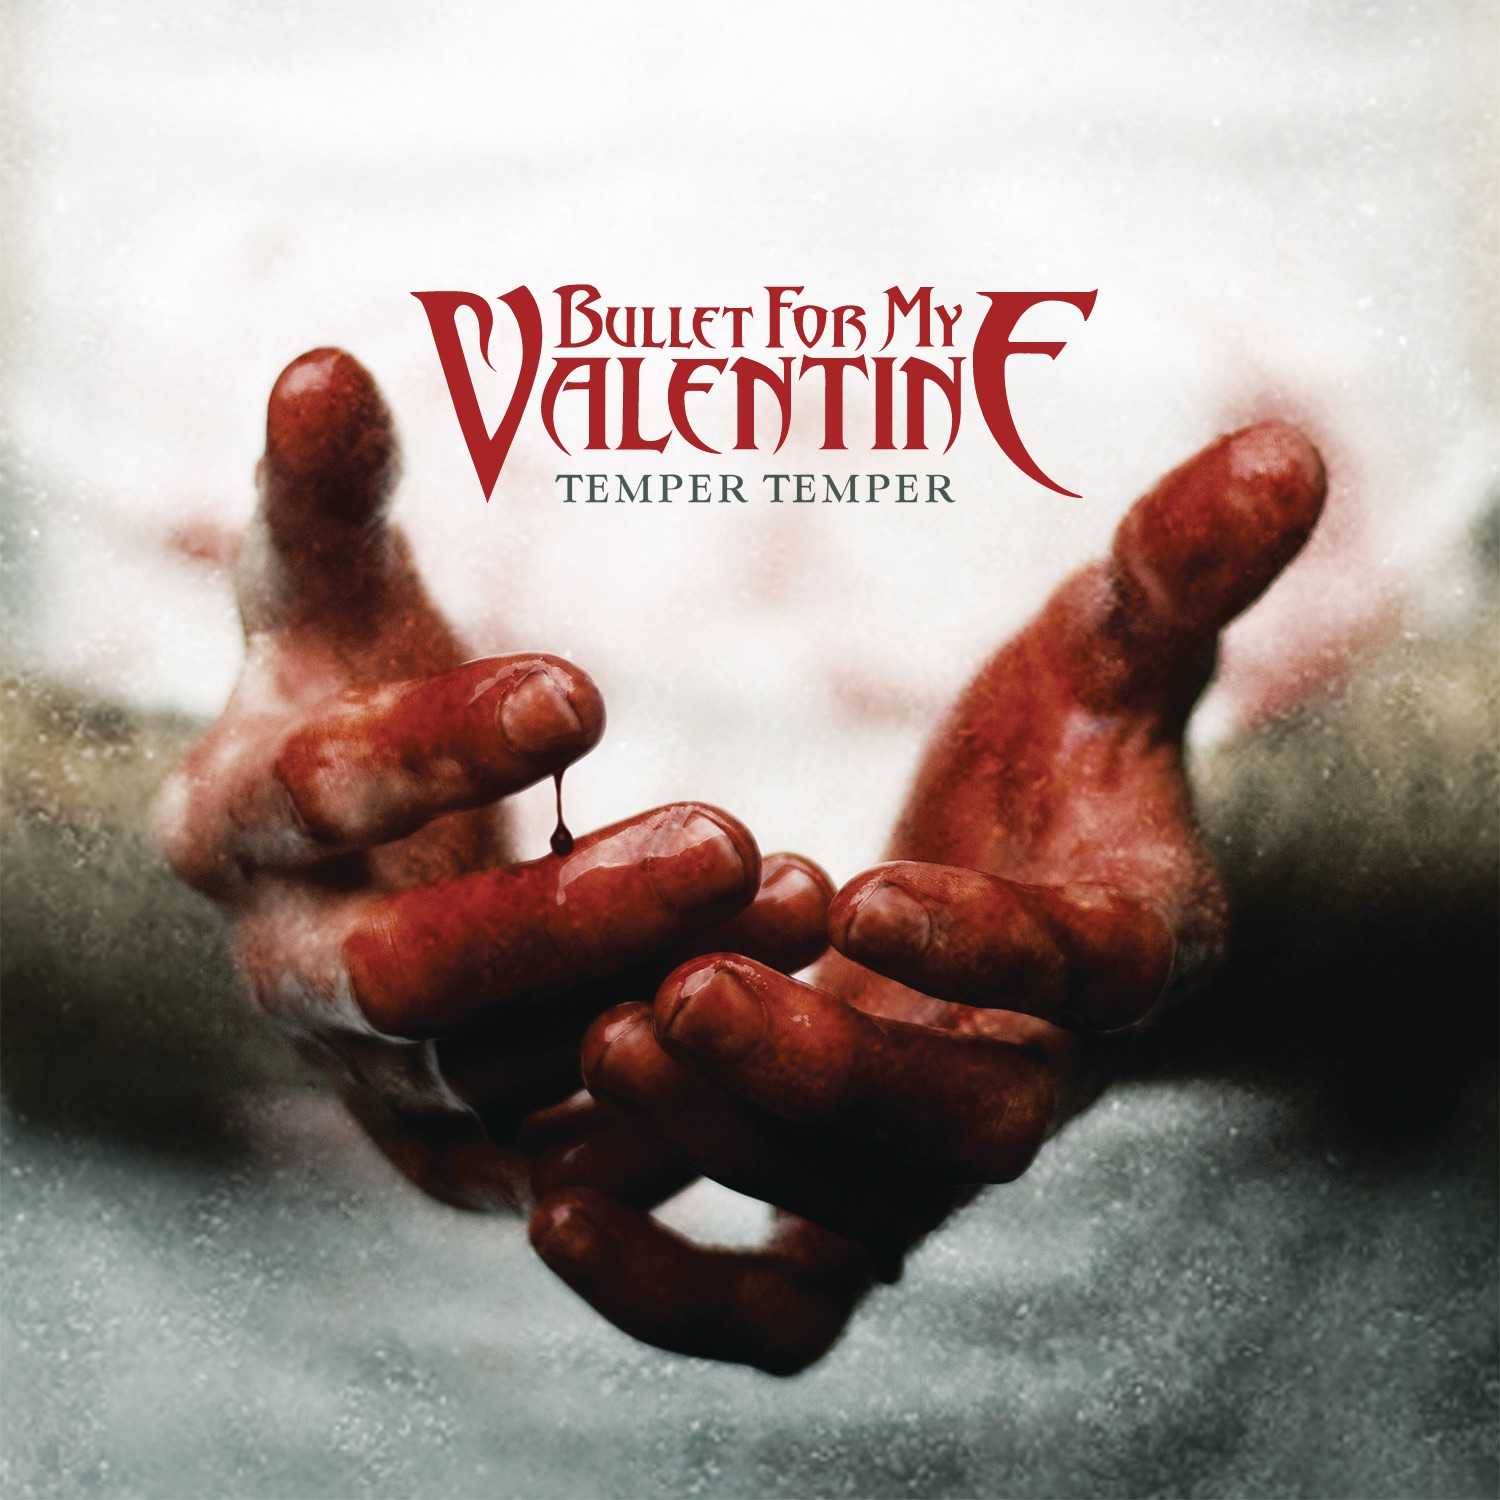 Bullet for My Valentine album Temper Temper (Track By Track Commentary)